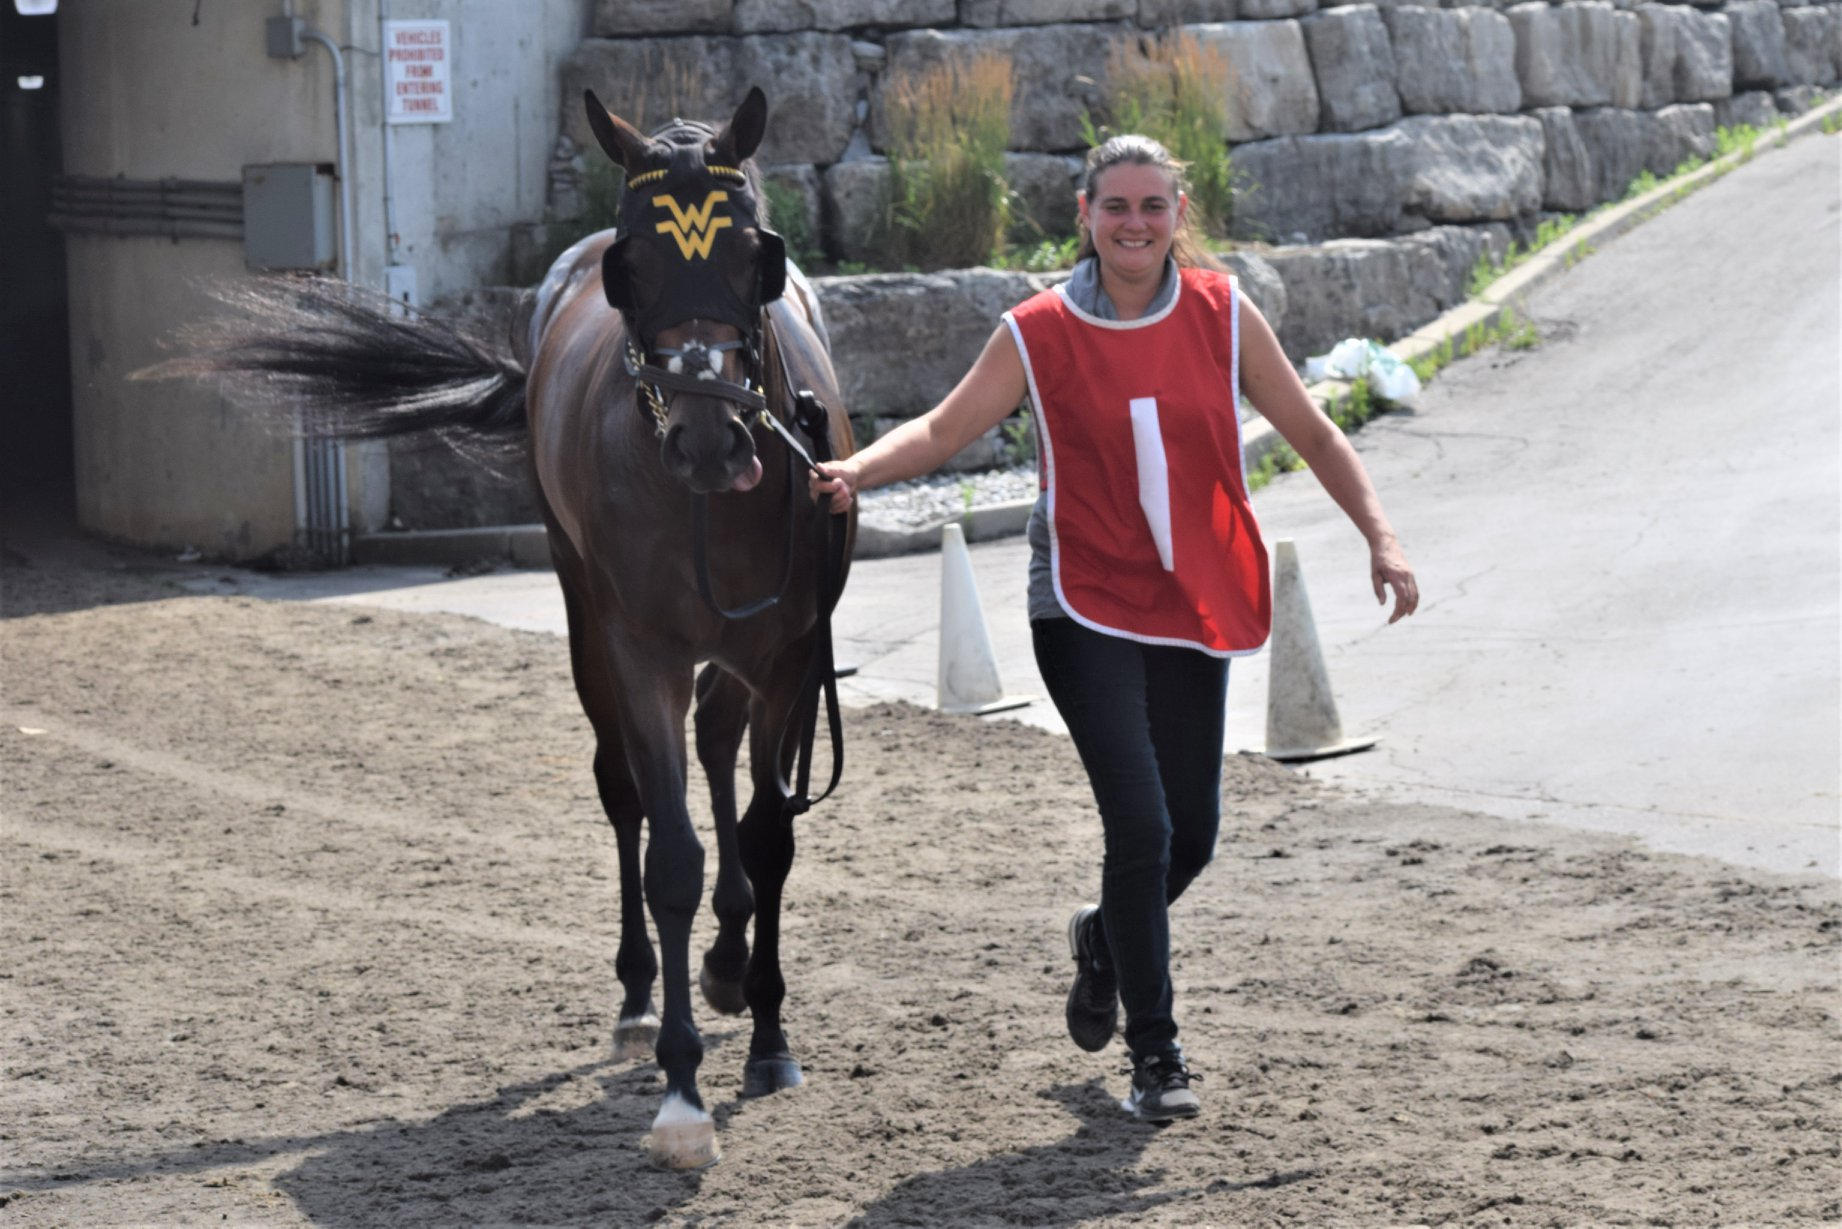 Crystal Todd holding a brown horse on a tapita racetrack.